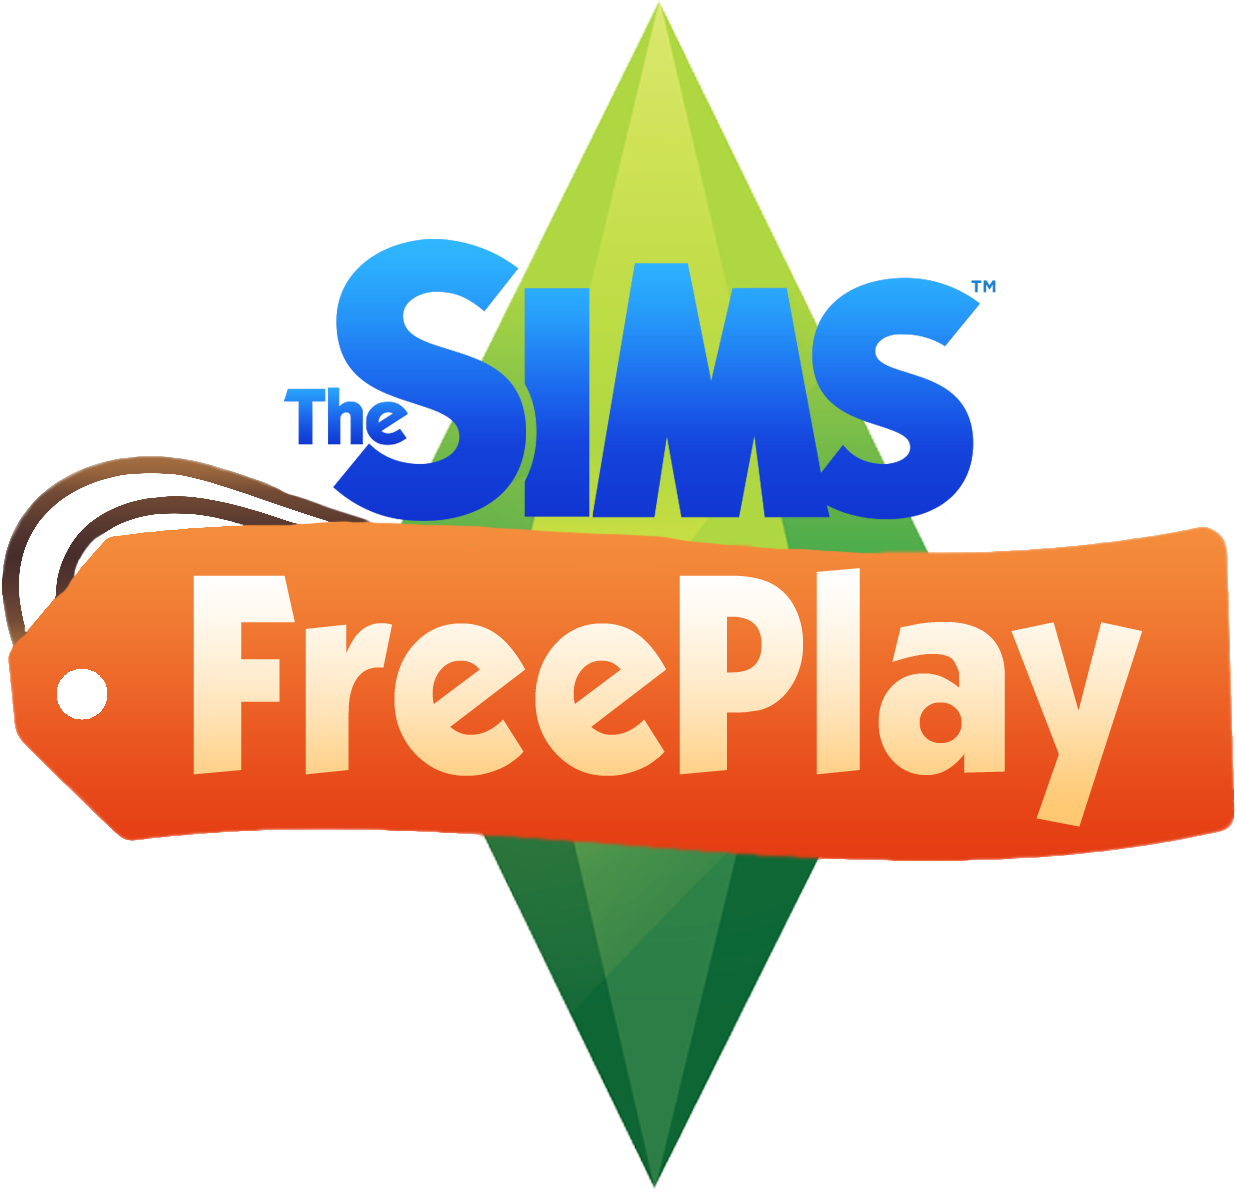 The_Sims_FreePlay_Logo